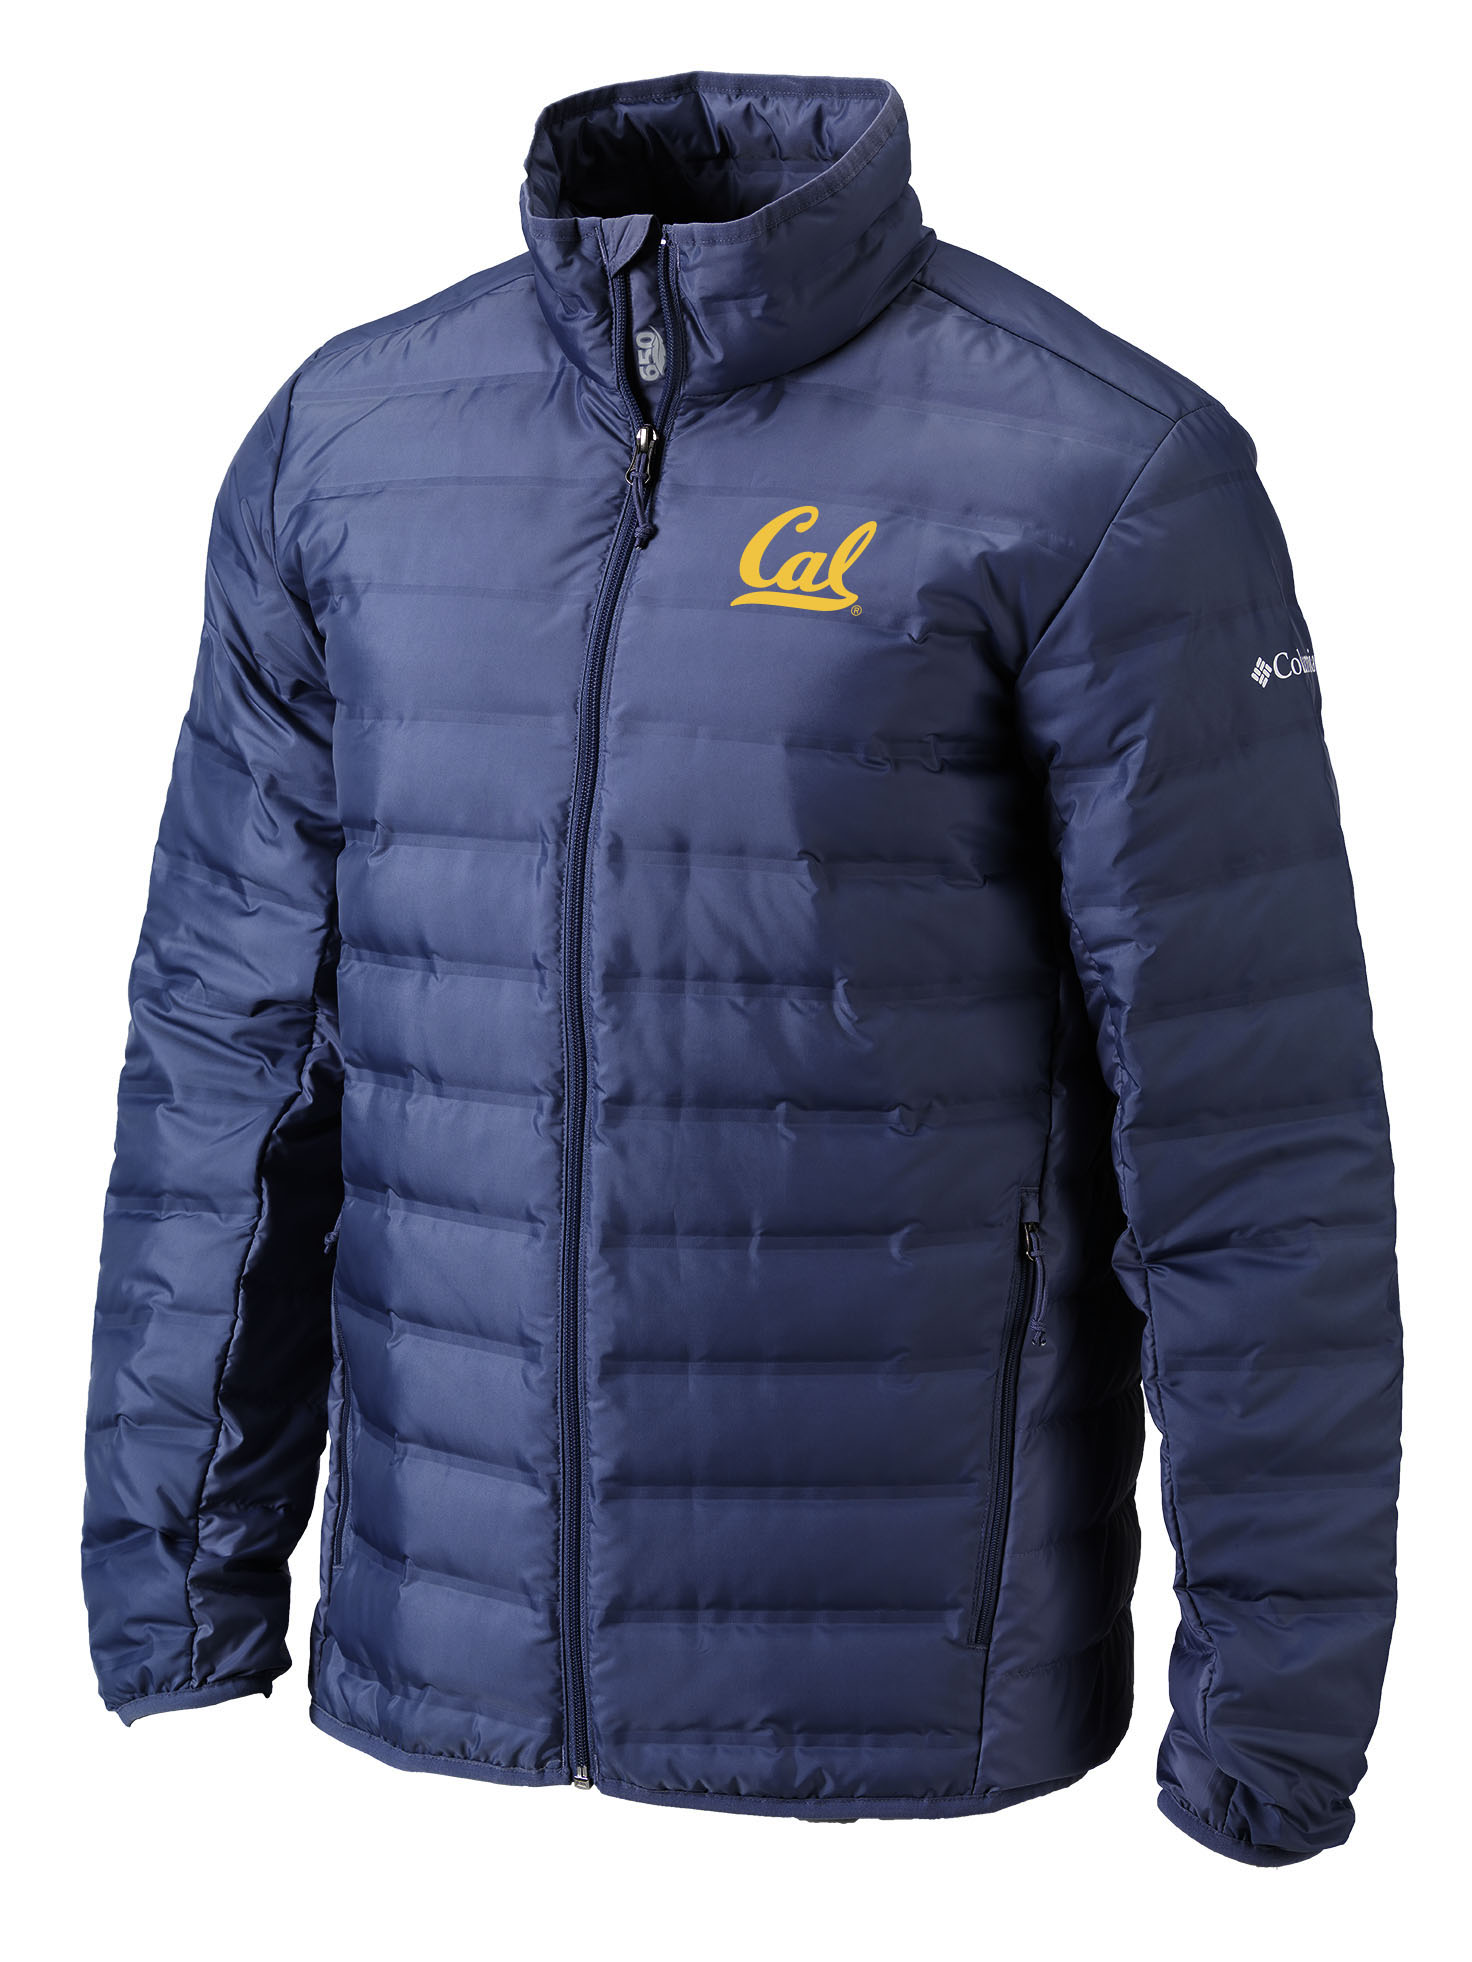 M Columbia Lake 22 Jacket